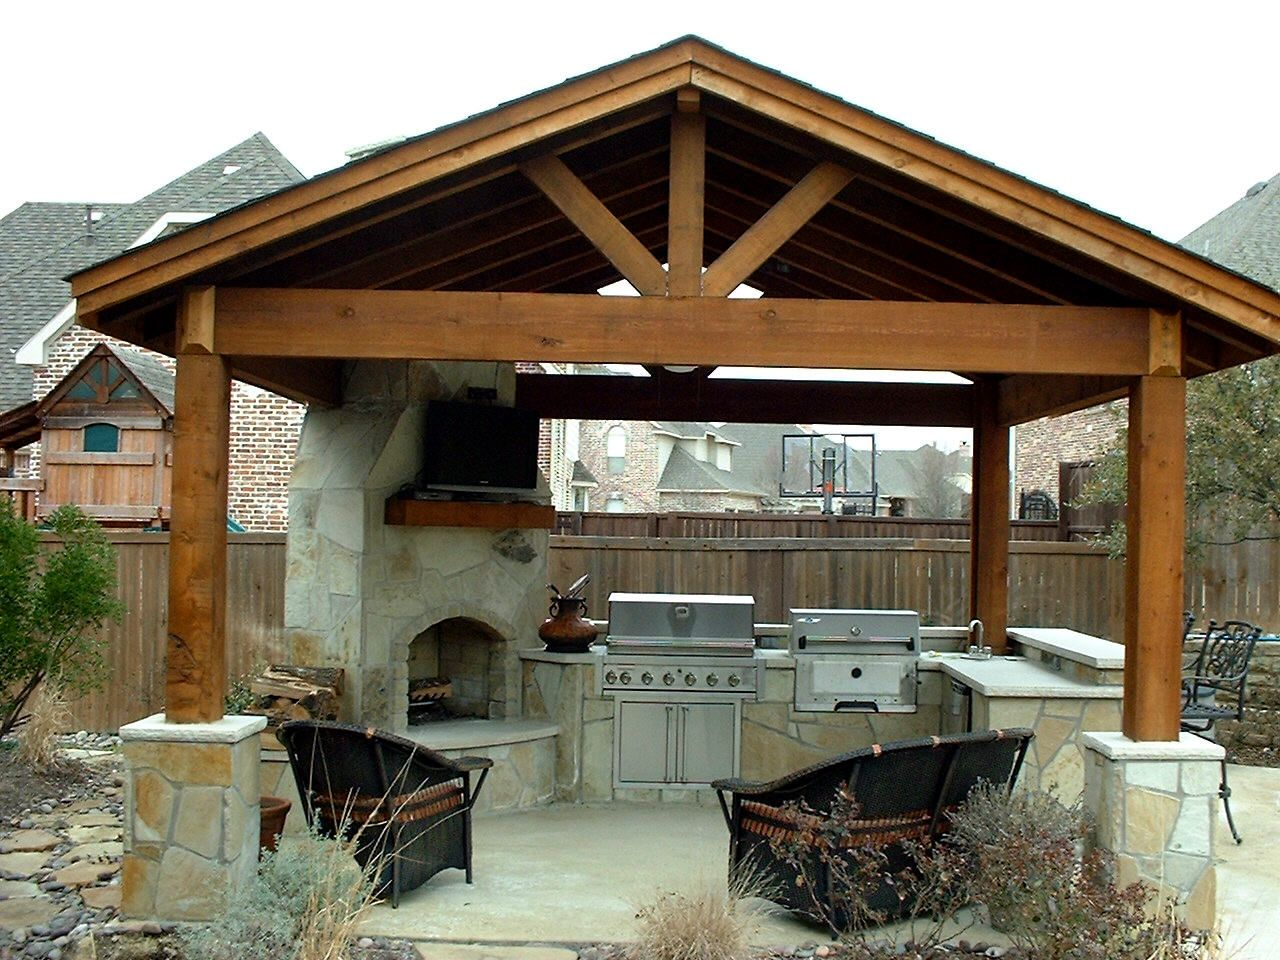 outdoor kitchen designs. Amazing Outdoor Kitchens Part 3 Best 25  kitchen design ideas on Pinterest Backyard